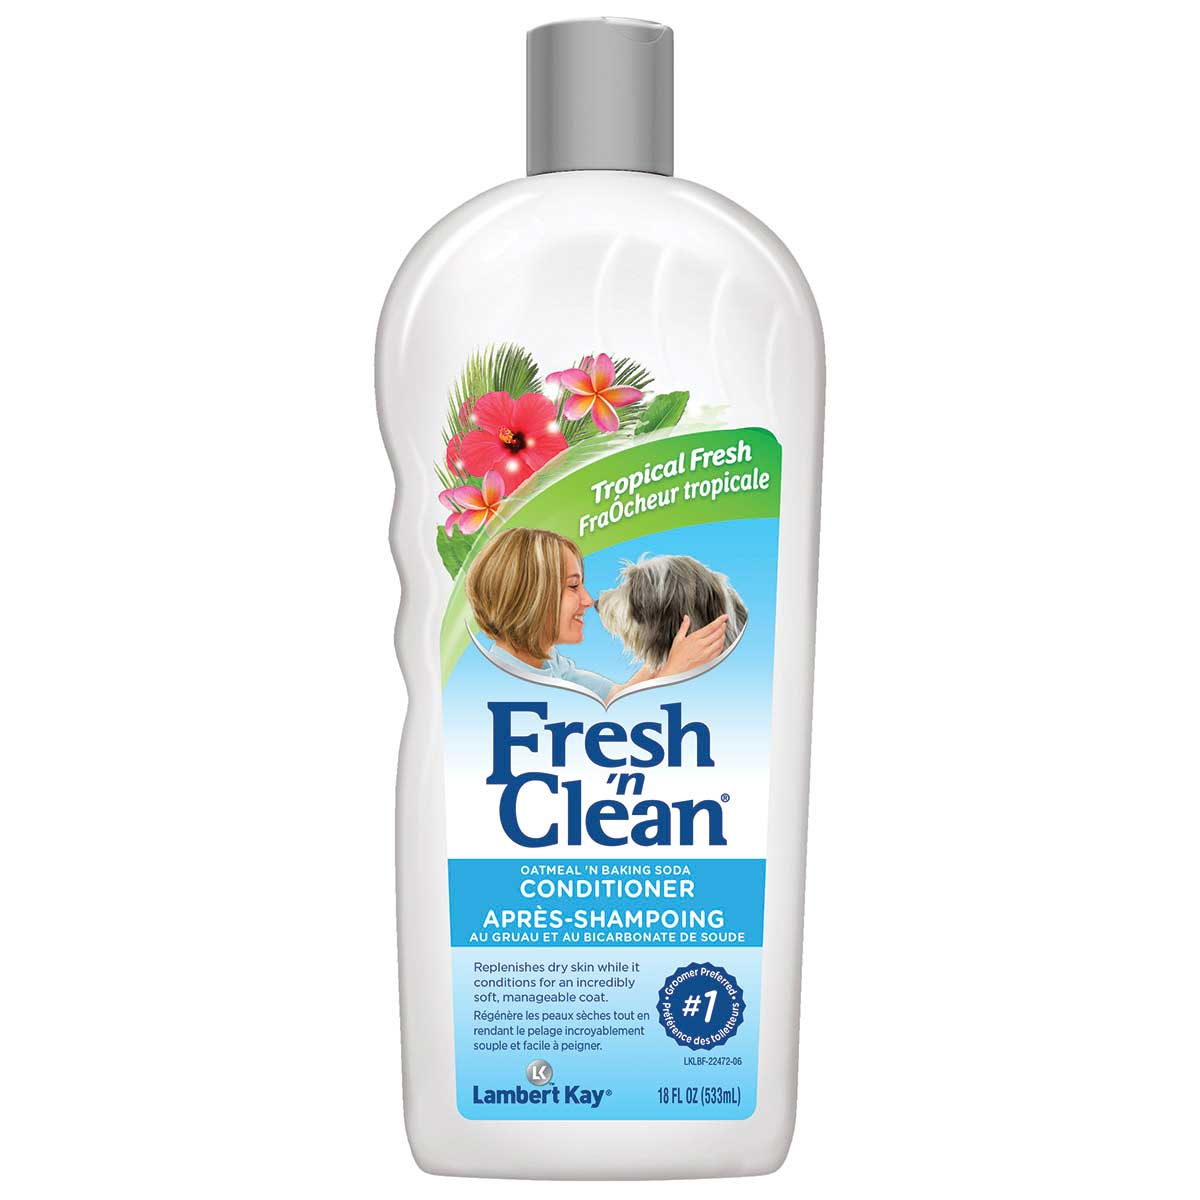 Fresh 'n Clean Oatmeal 'n Baking Soda Conditioner - Tropcial Breeze Scent 18 oz